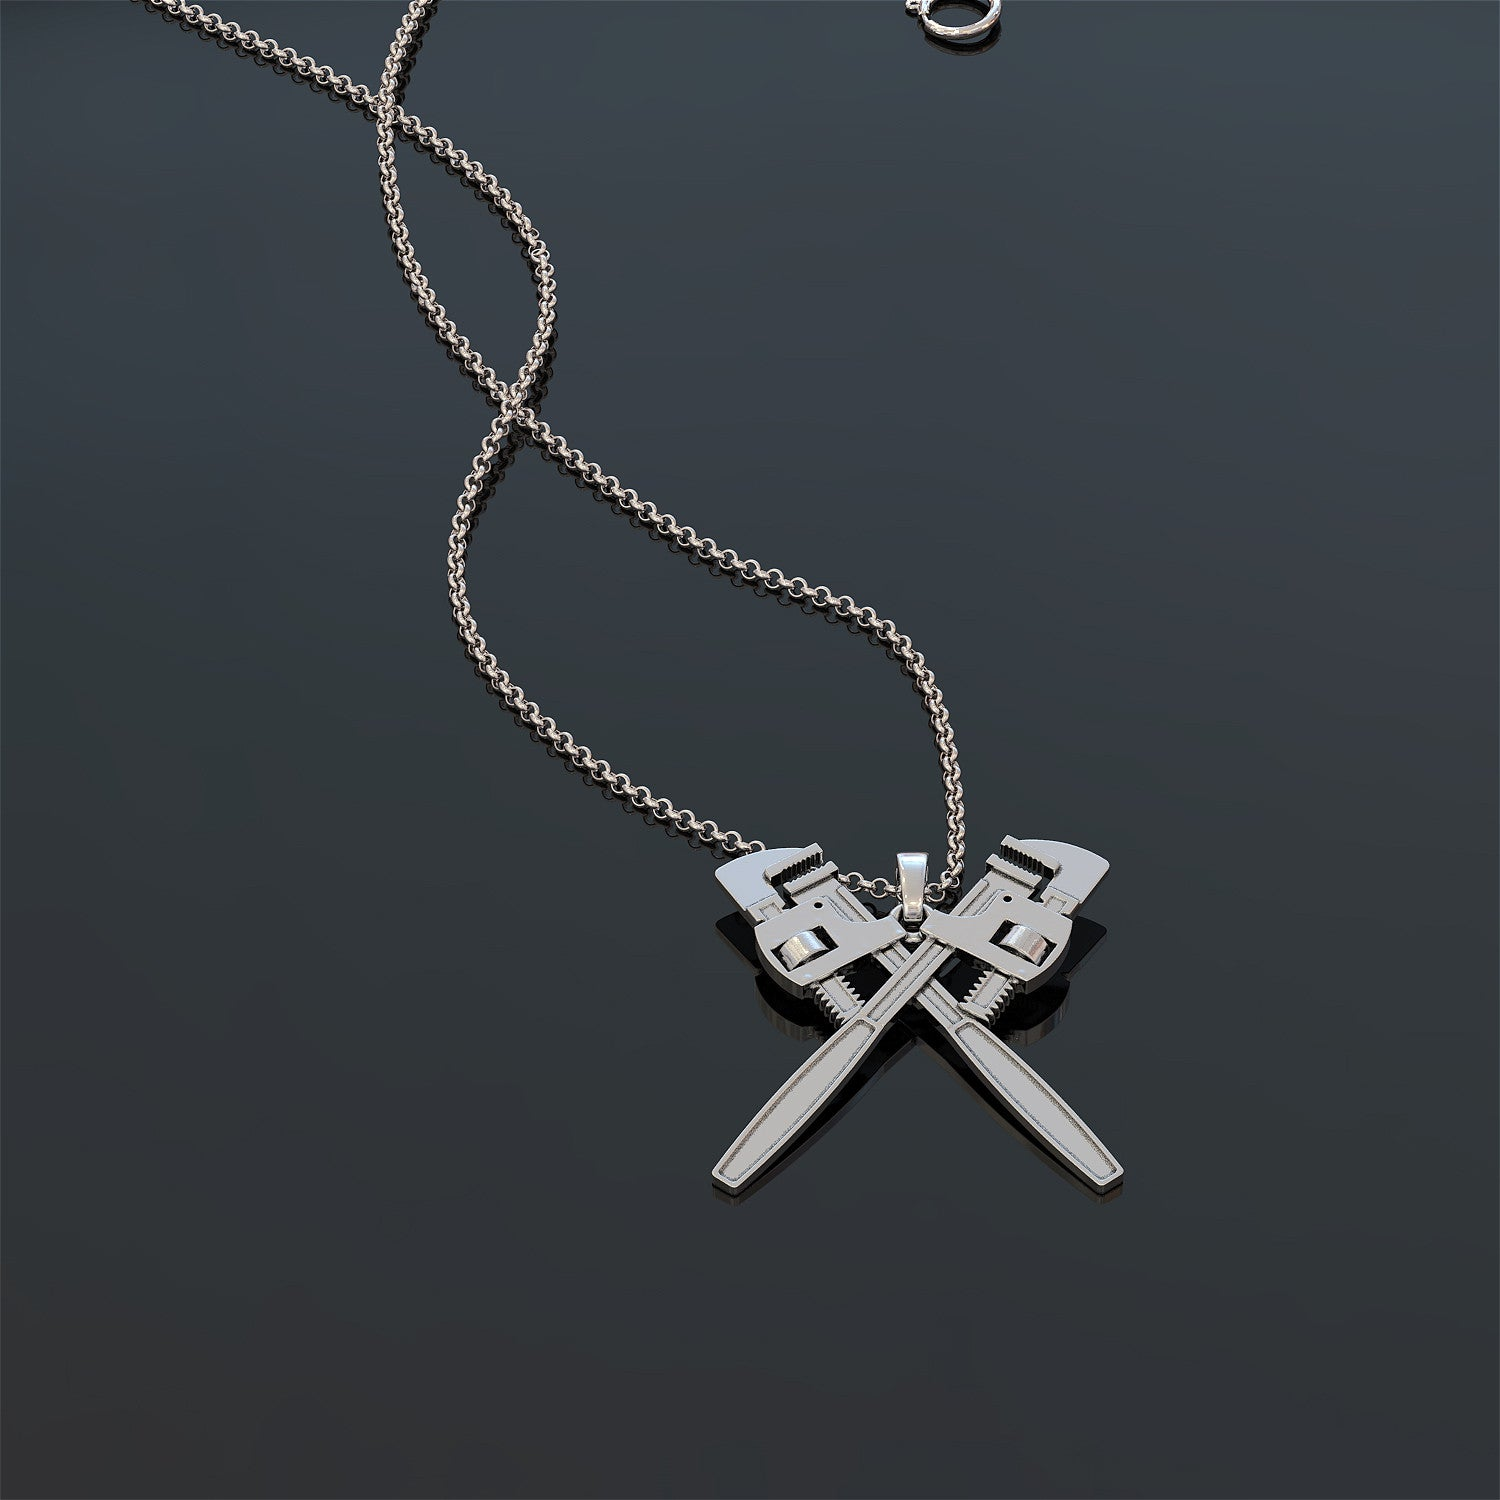 Pipefitter Wife Necklace